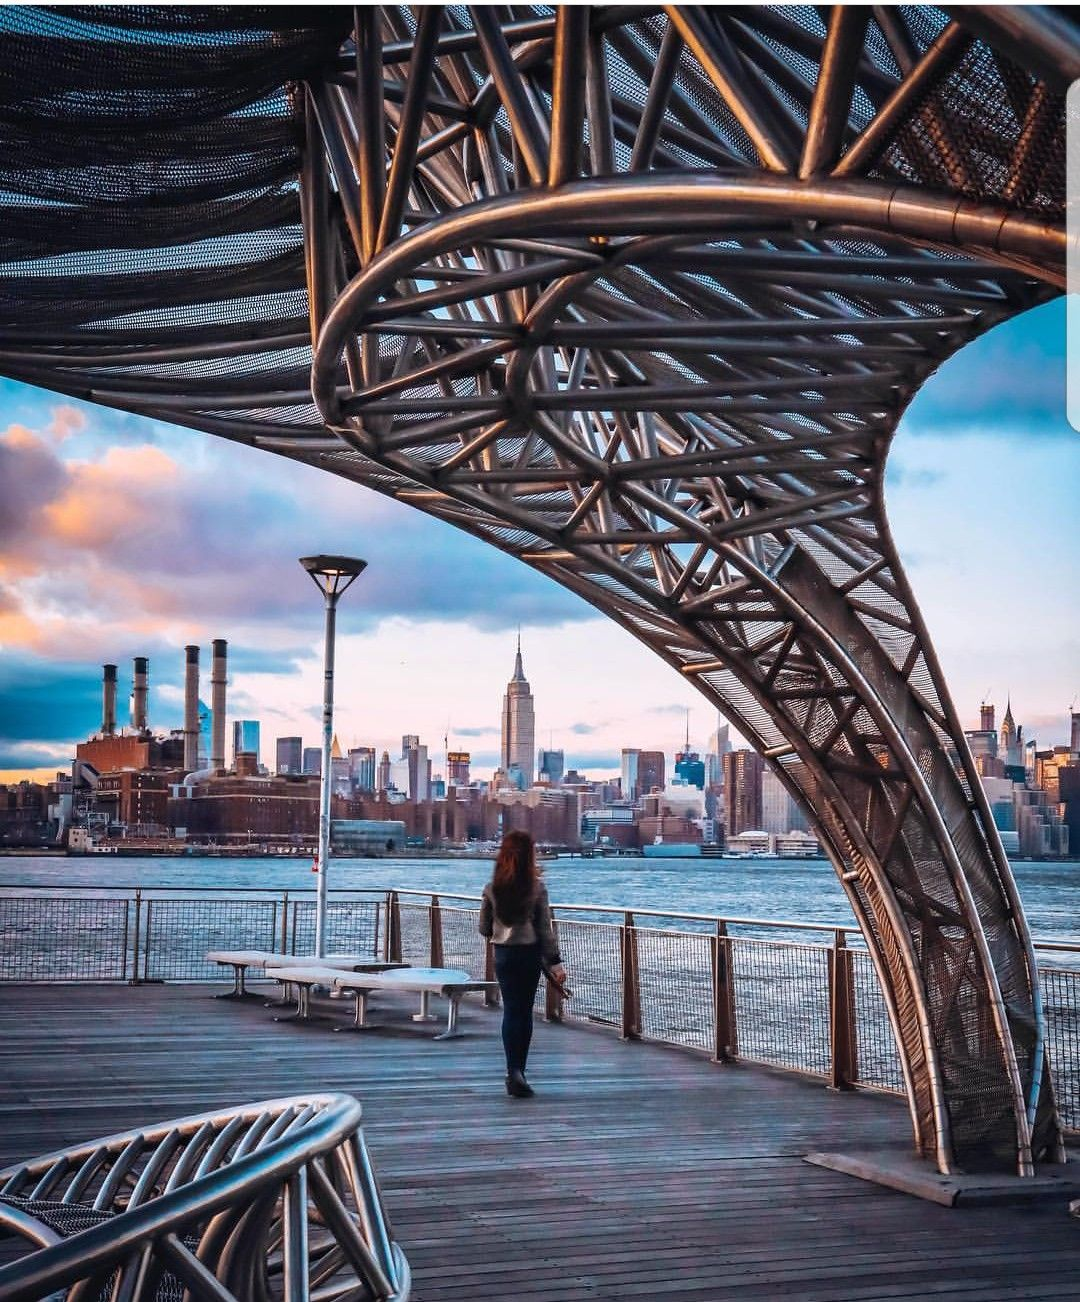 NYC ferry - North Williamsburg station | new york in 2019